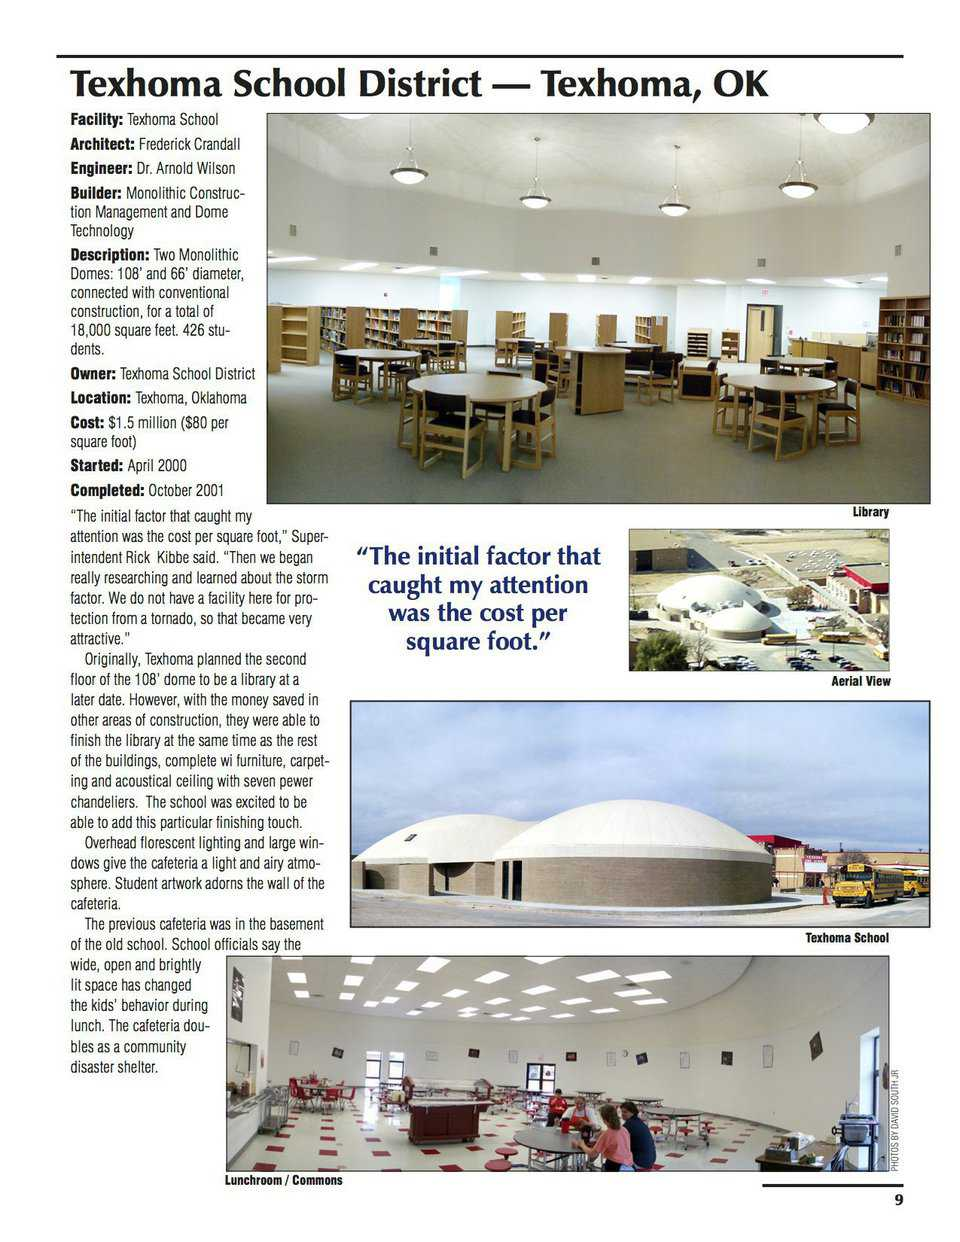 Sample pages – Texhoma School District, Texhoma, Oklahoma